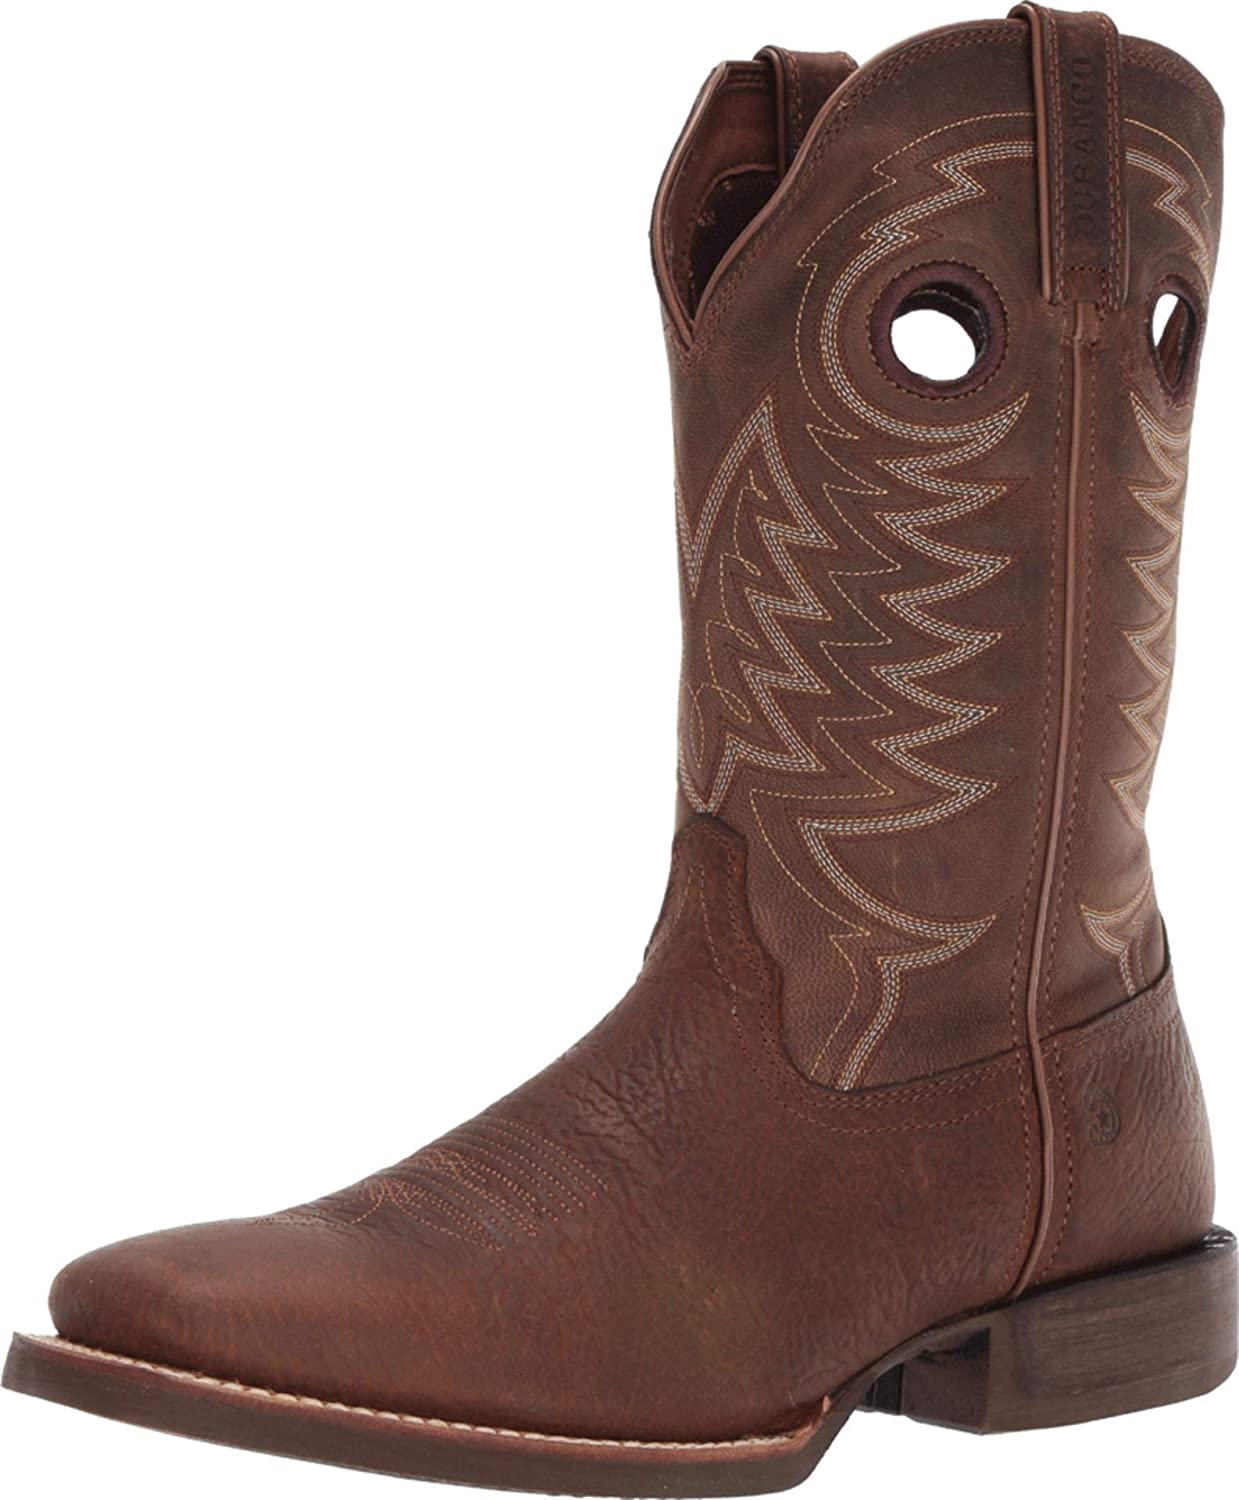 Durango Charlotte Mall Rebel Pro Brown Western Popular products Size 10 W Boot